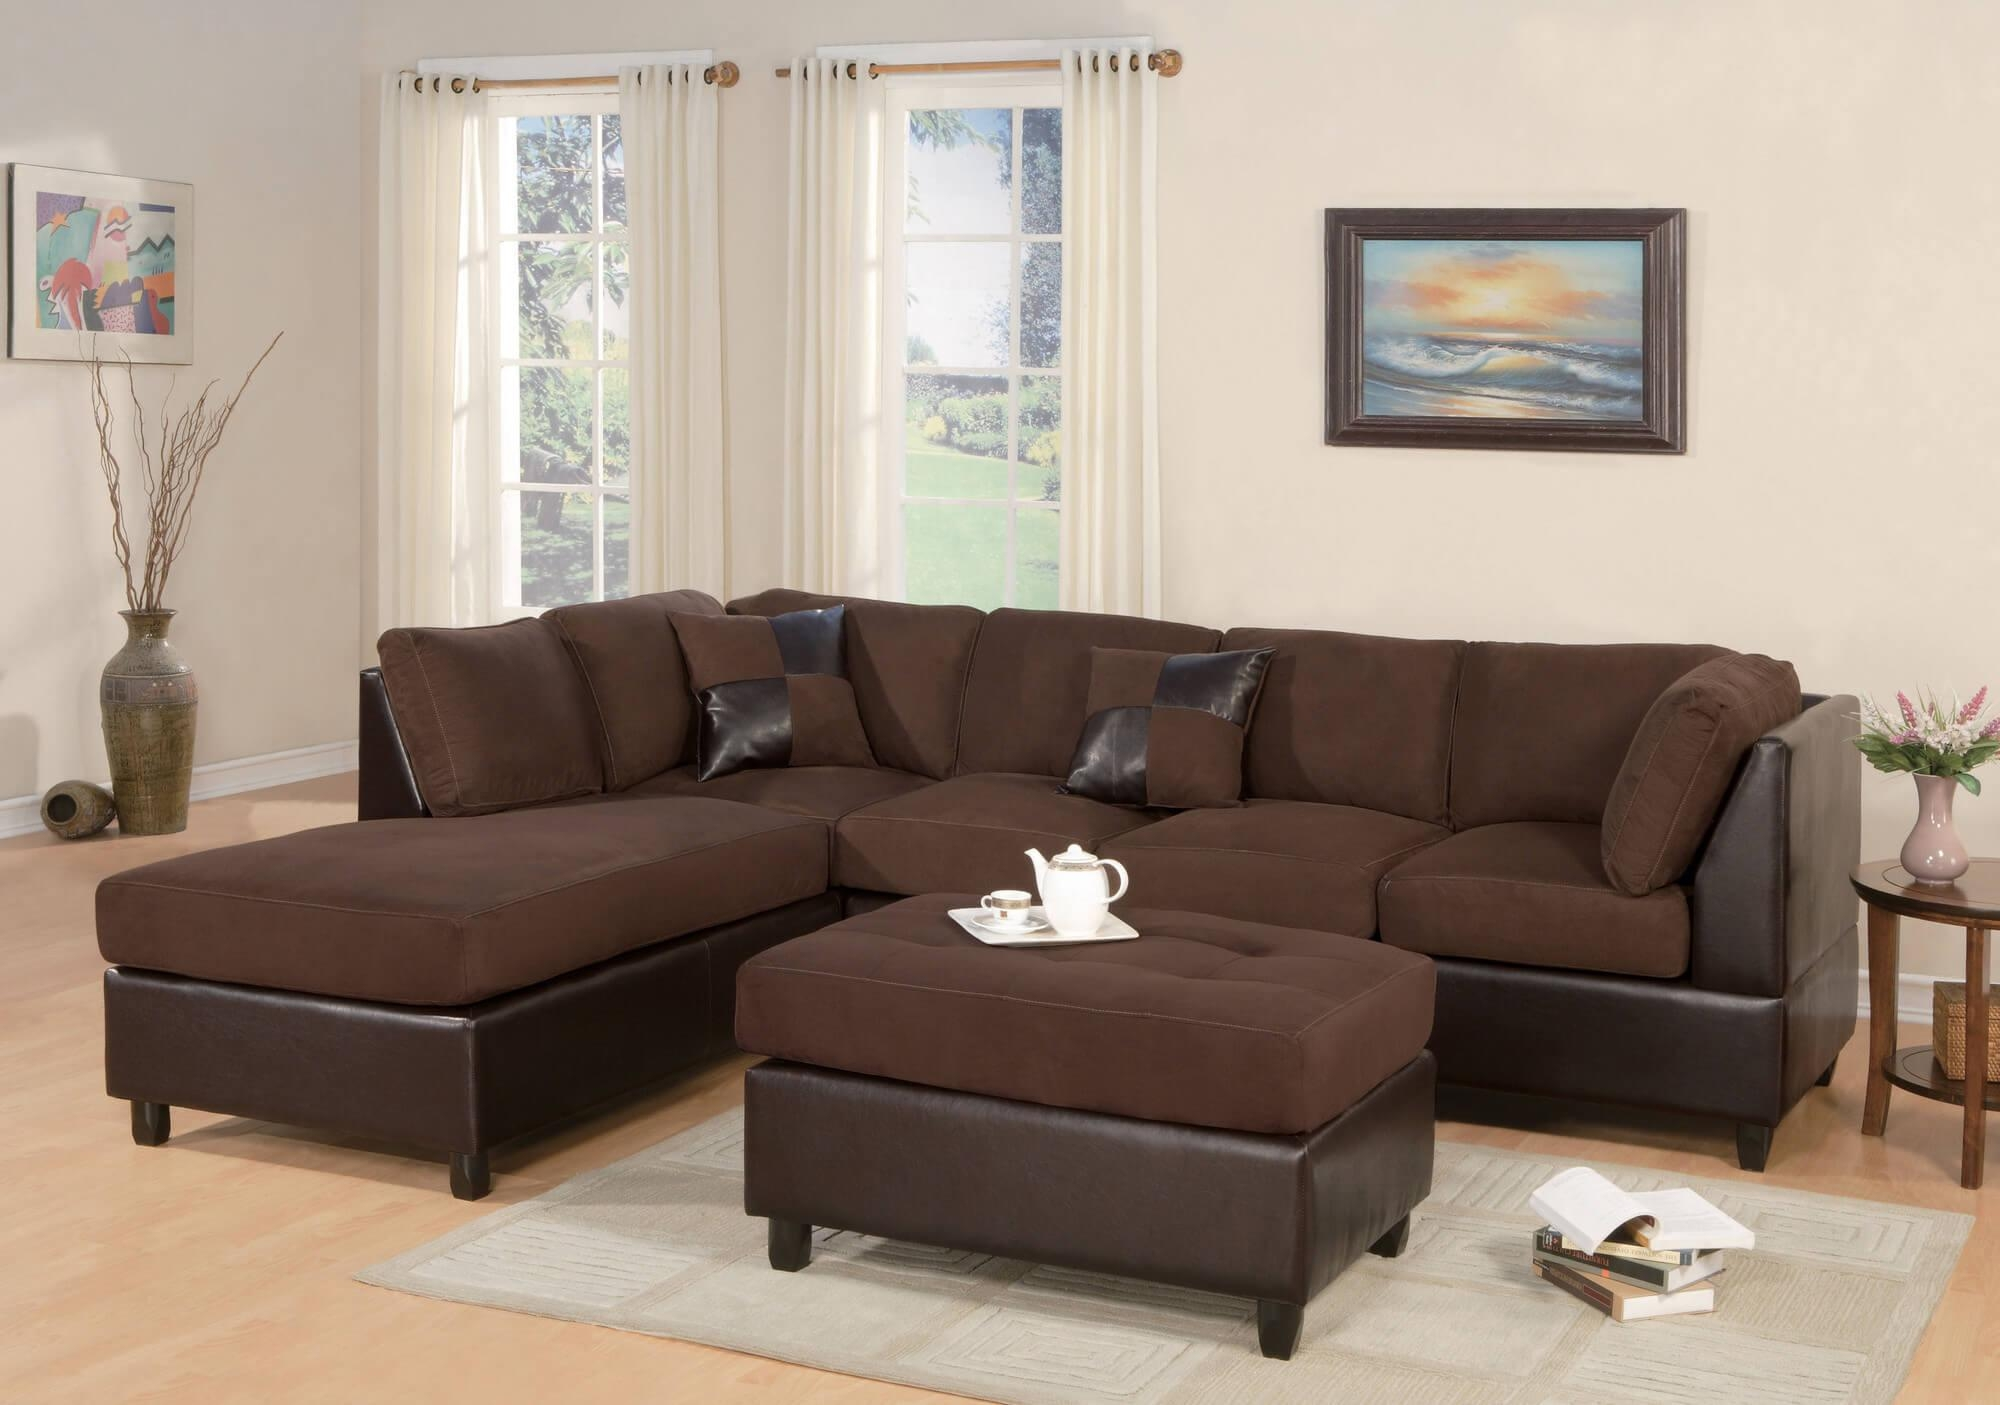 Decorating: Fill Your Home With Comfy Costco Sectionals Sofa For With Regard To Berkline Sectional Sofas (Image 12 of 20)